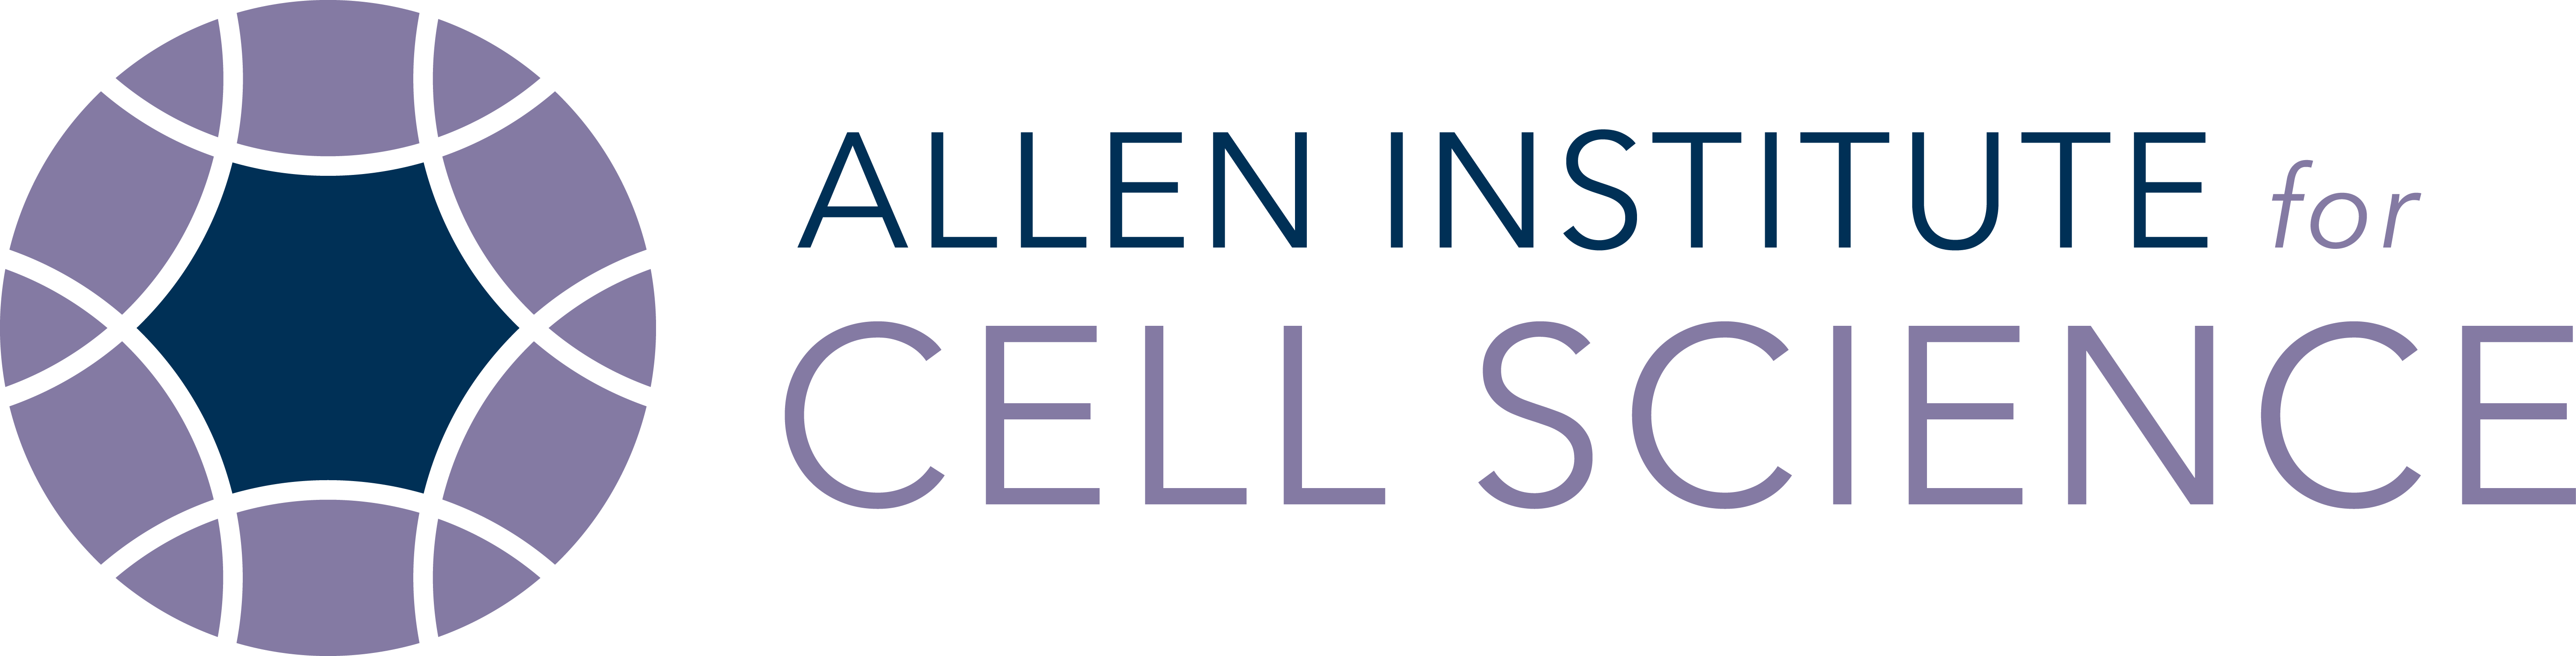 AI_Cell_Science_Logo_RGB_2CLR